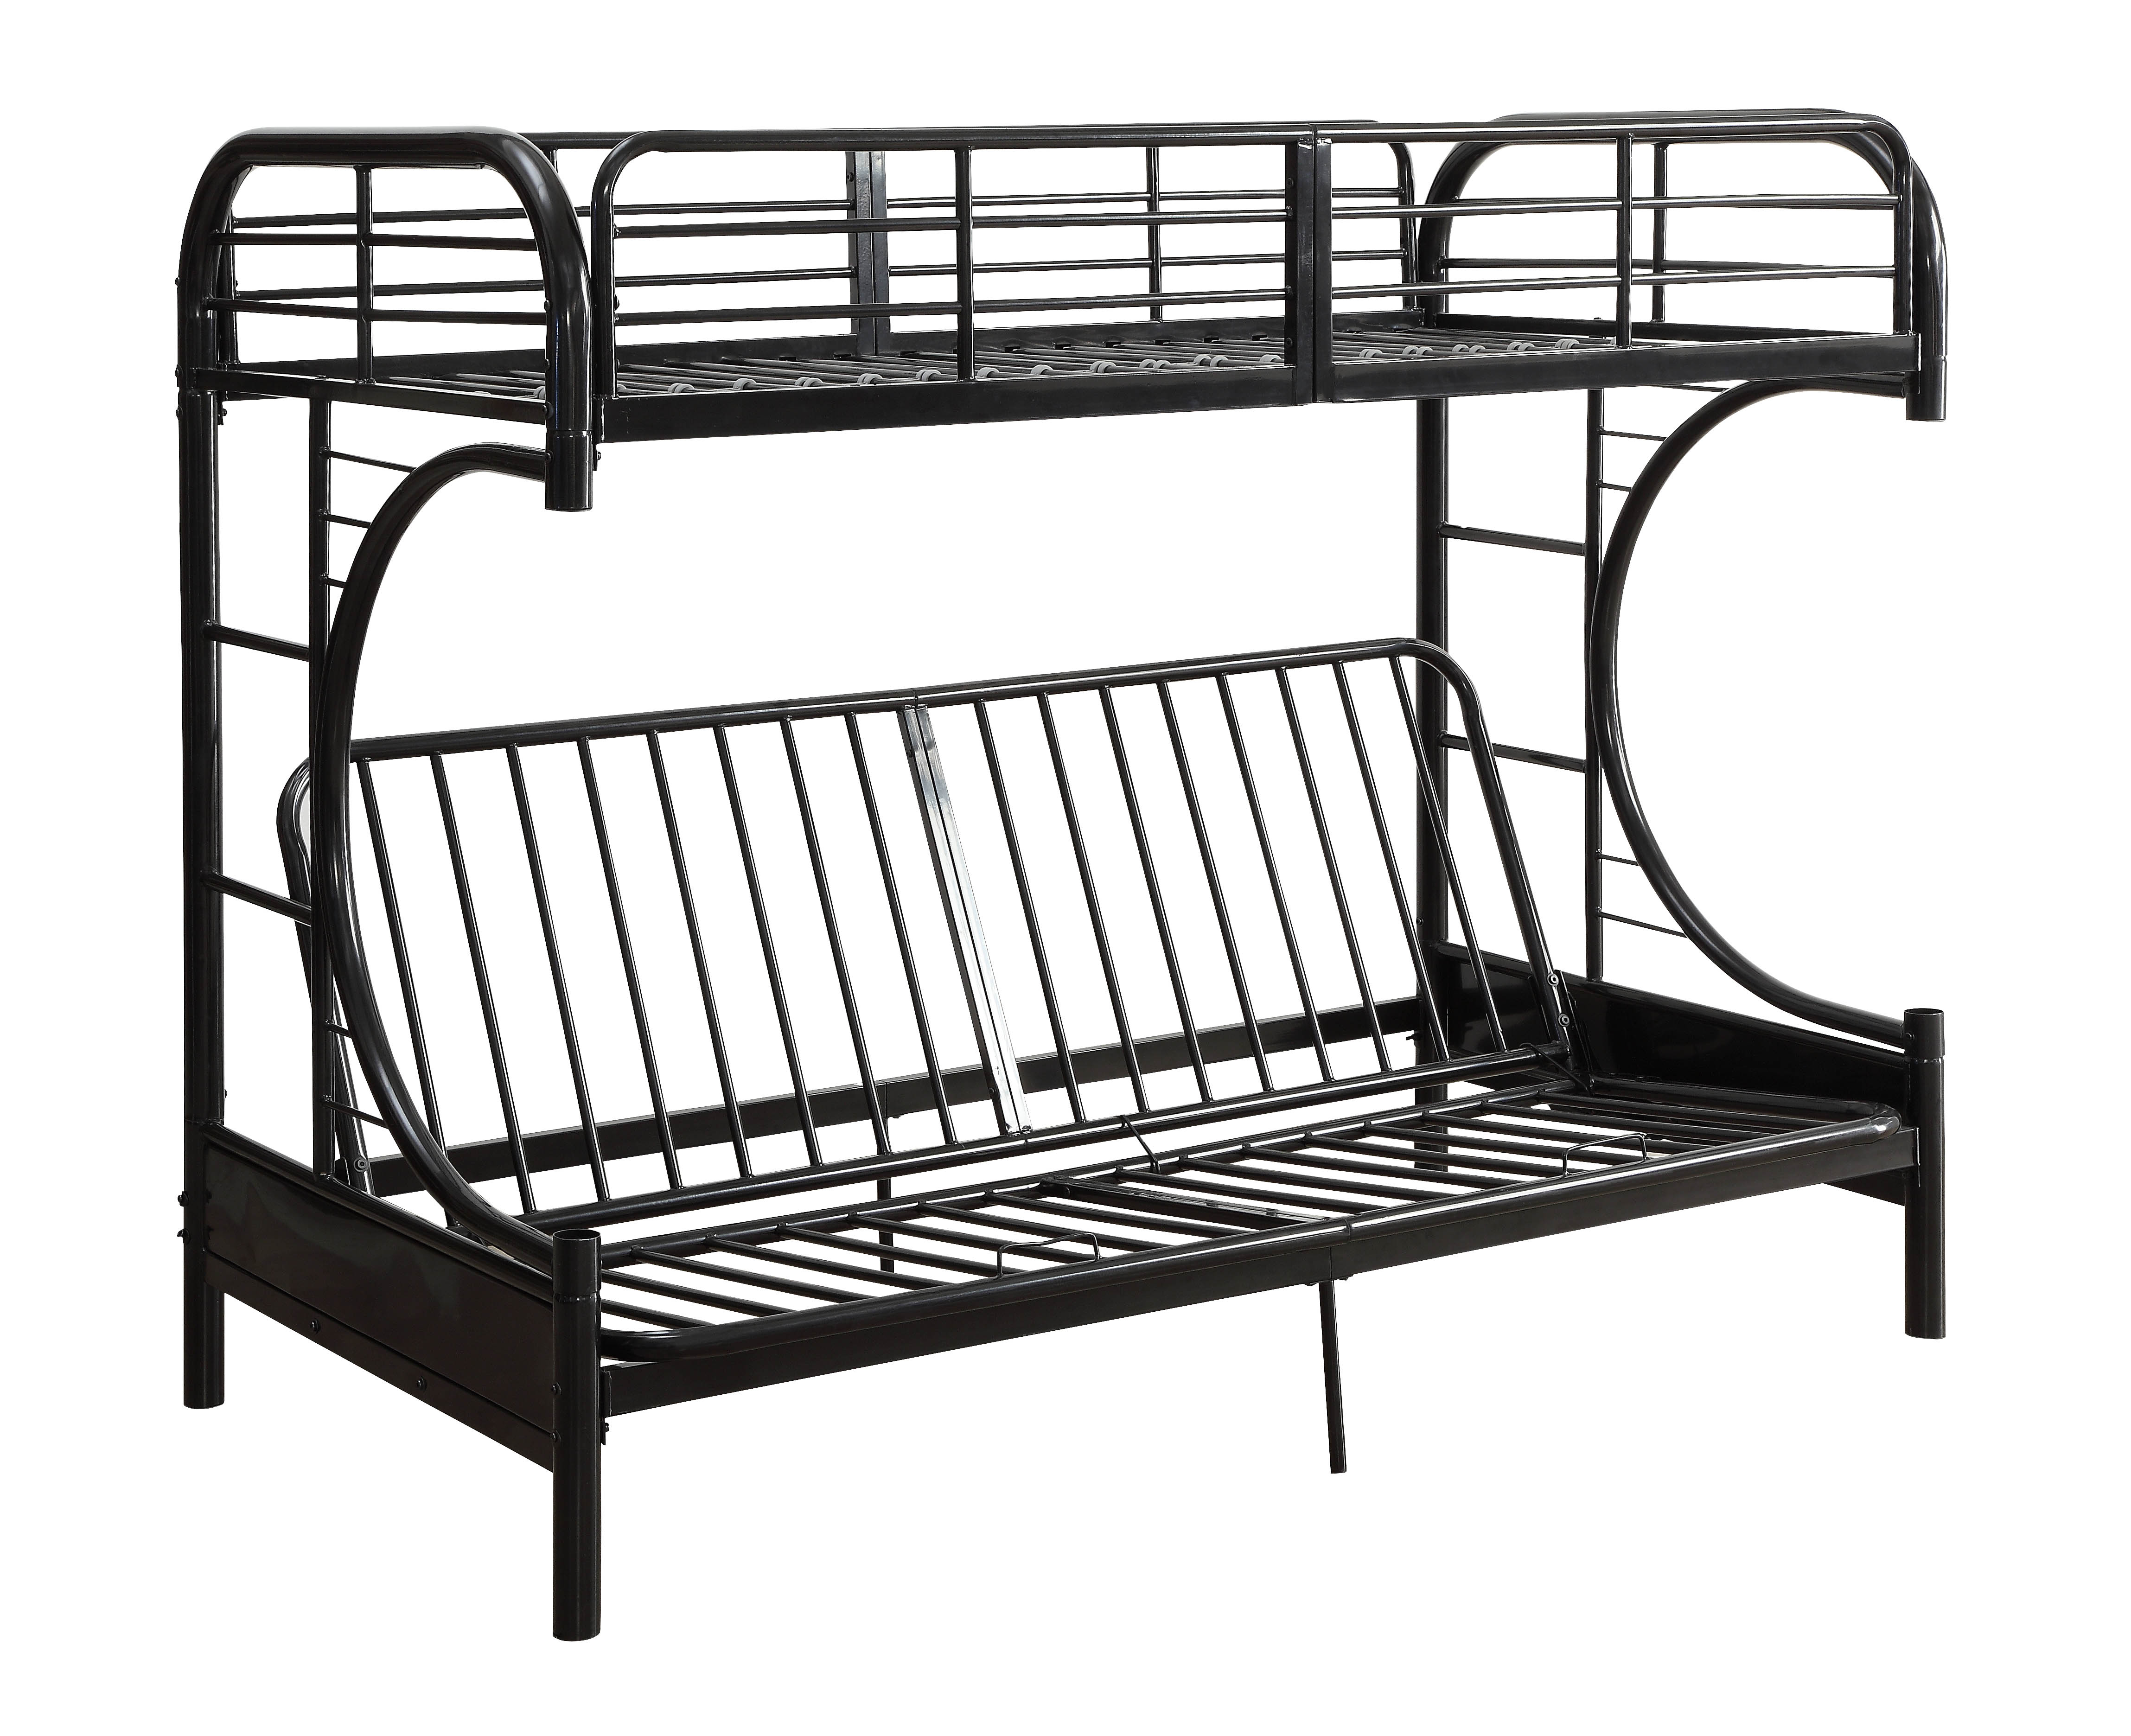 ACME Eclipse Twin Full Futon Bunk Bed, Black by Overstock